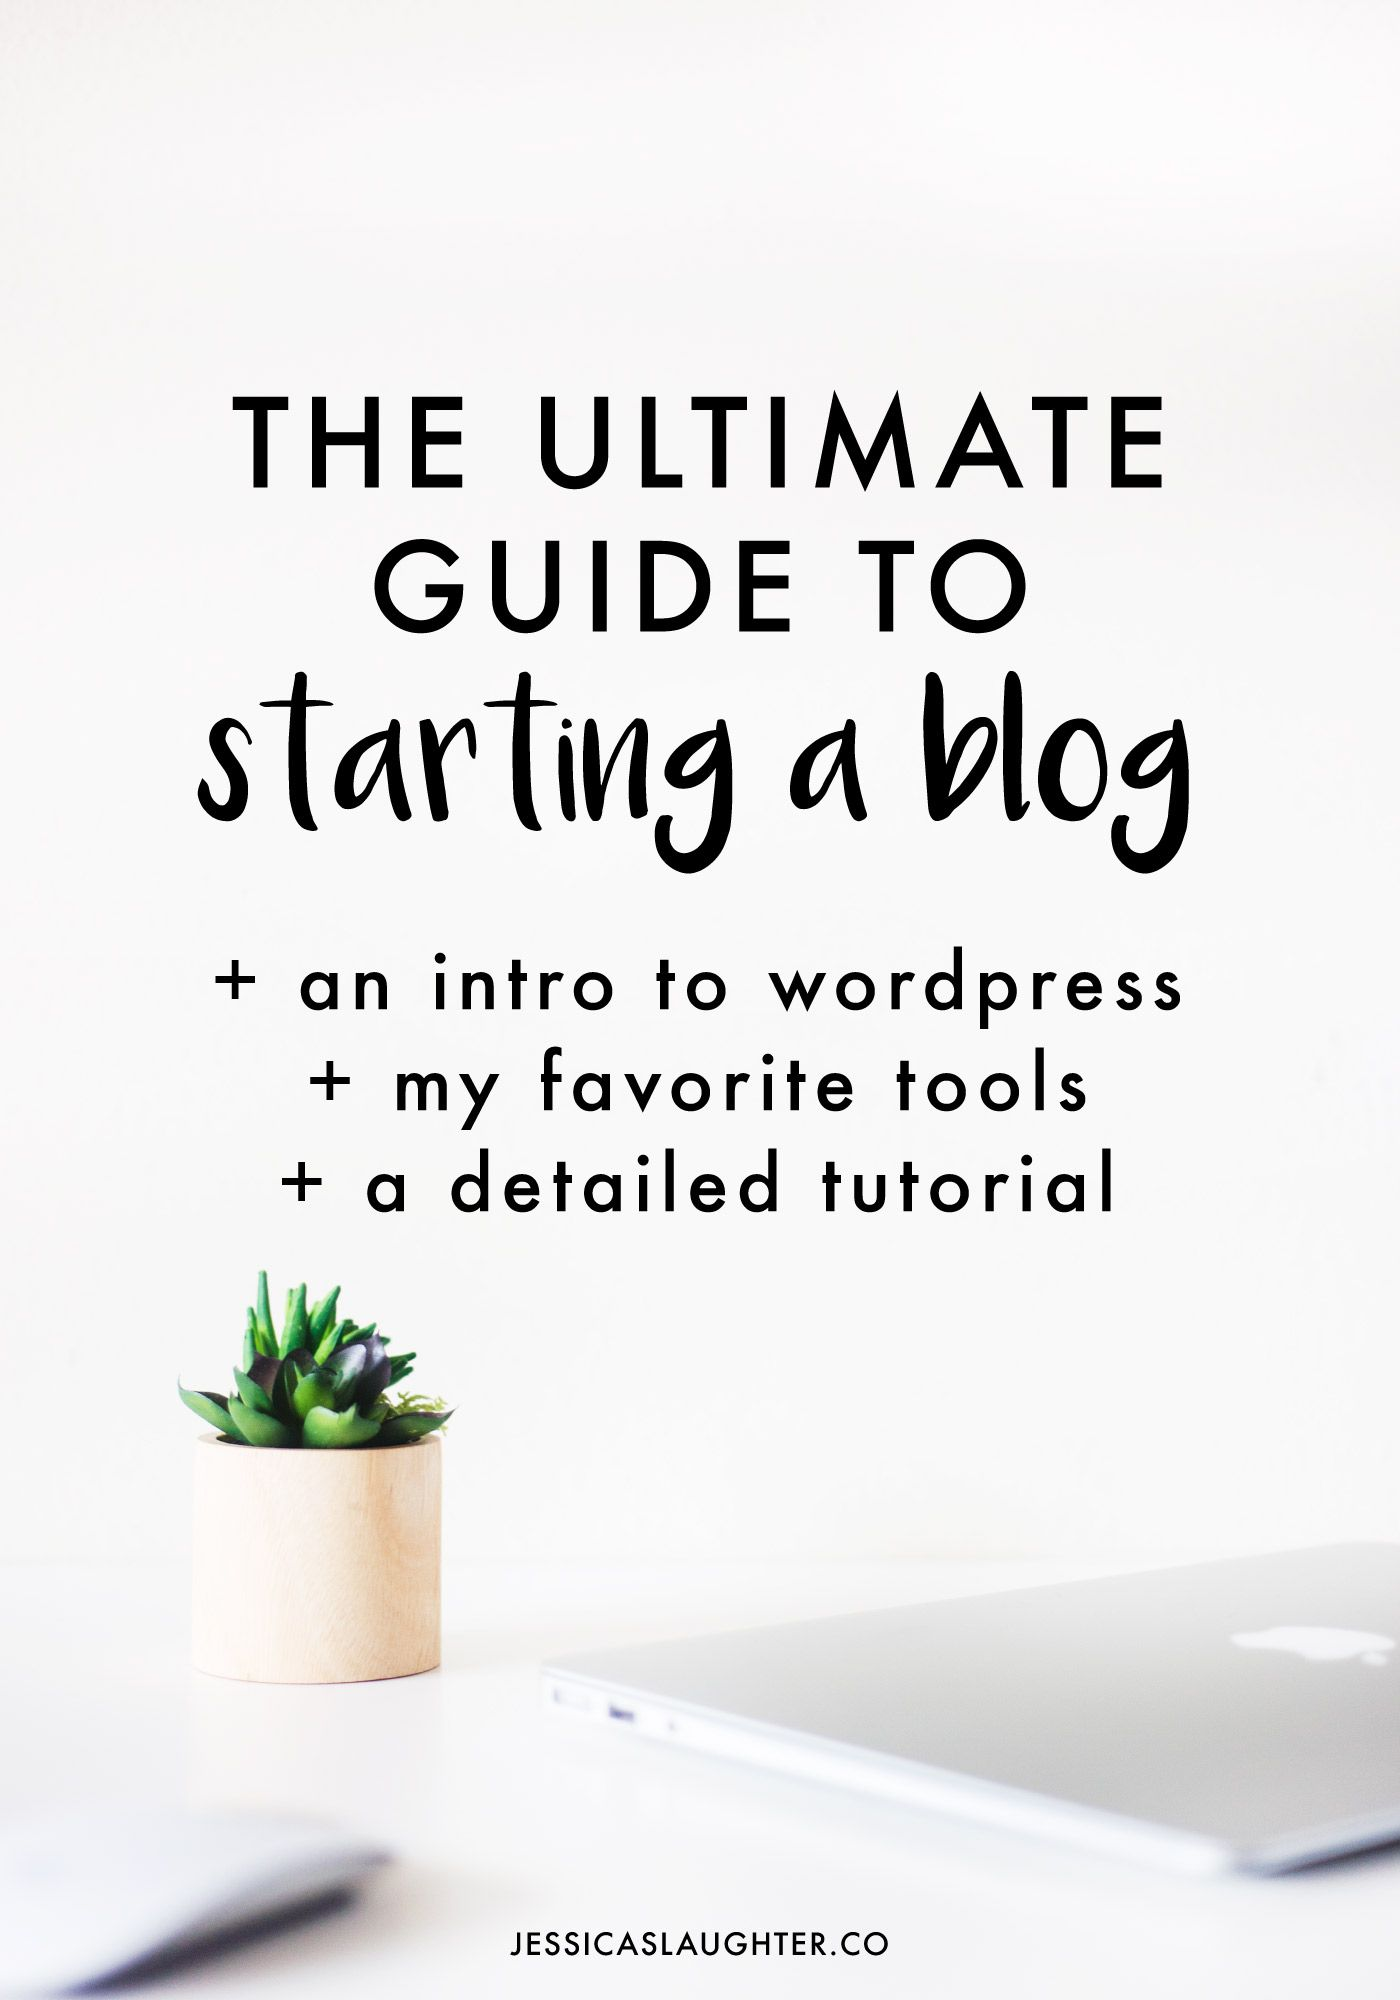 I'll take you through the whole process including setting up hosting, installing WordPress, finding the best plugins, and taking your blog to the next level!